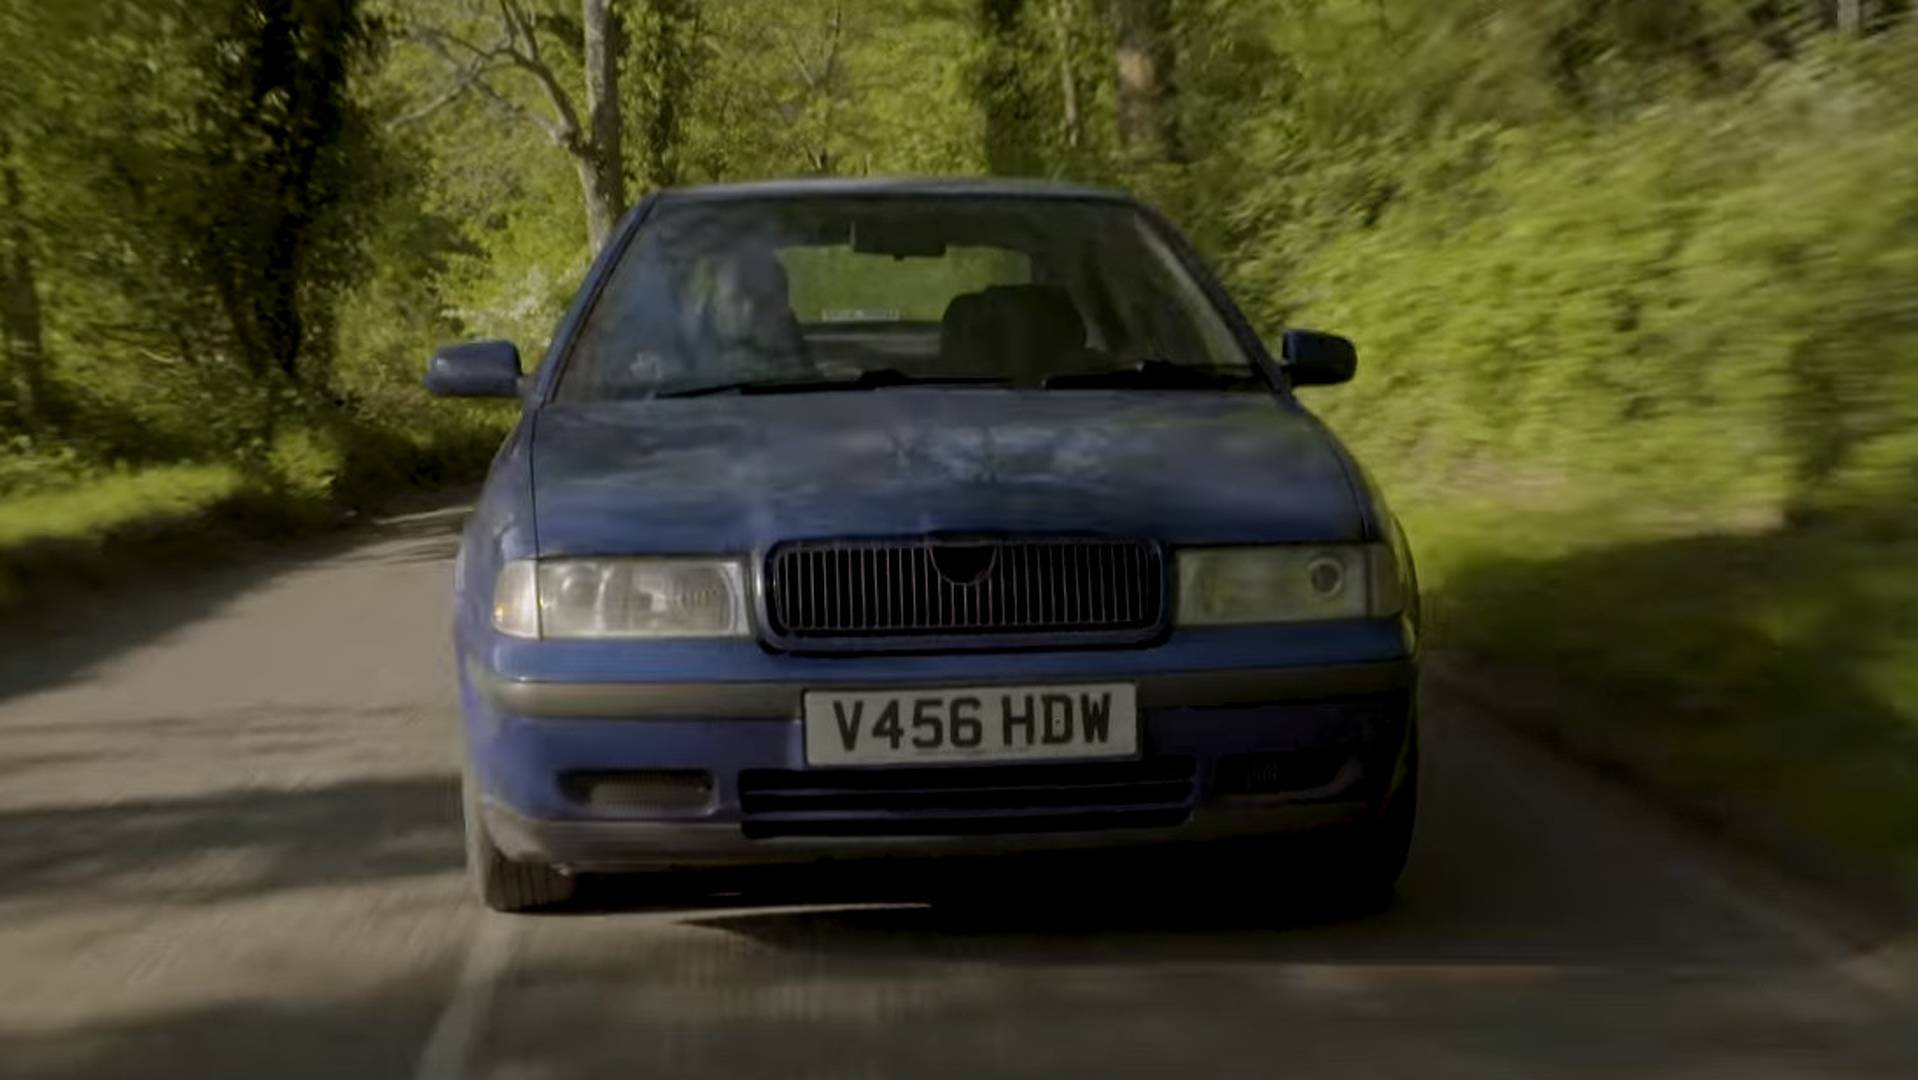 Formacar Car Throttle Restores Skoda Octavia With 700 000 Km On